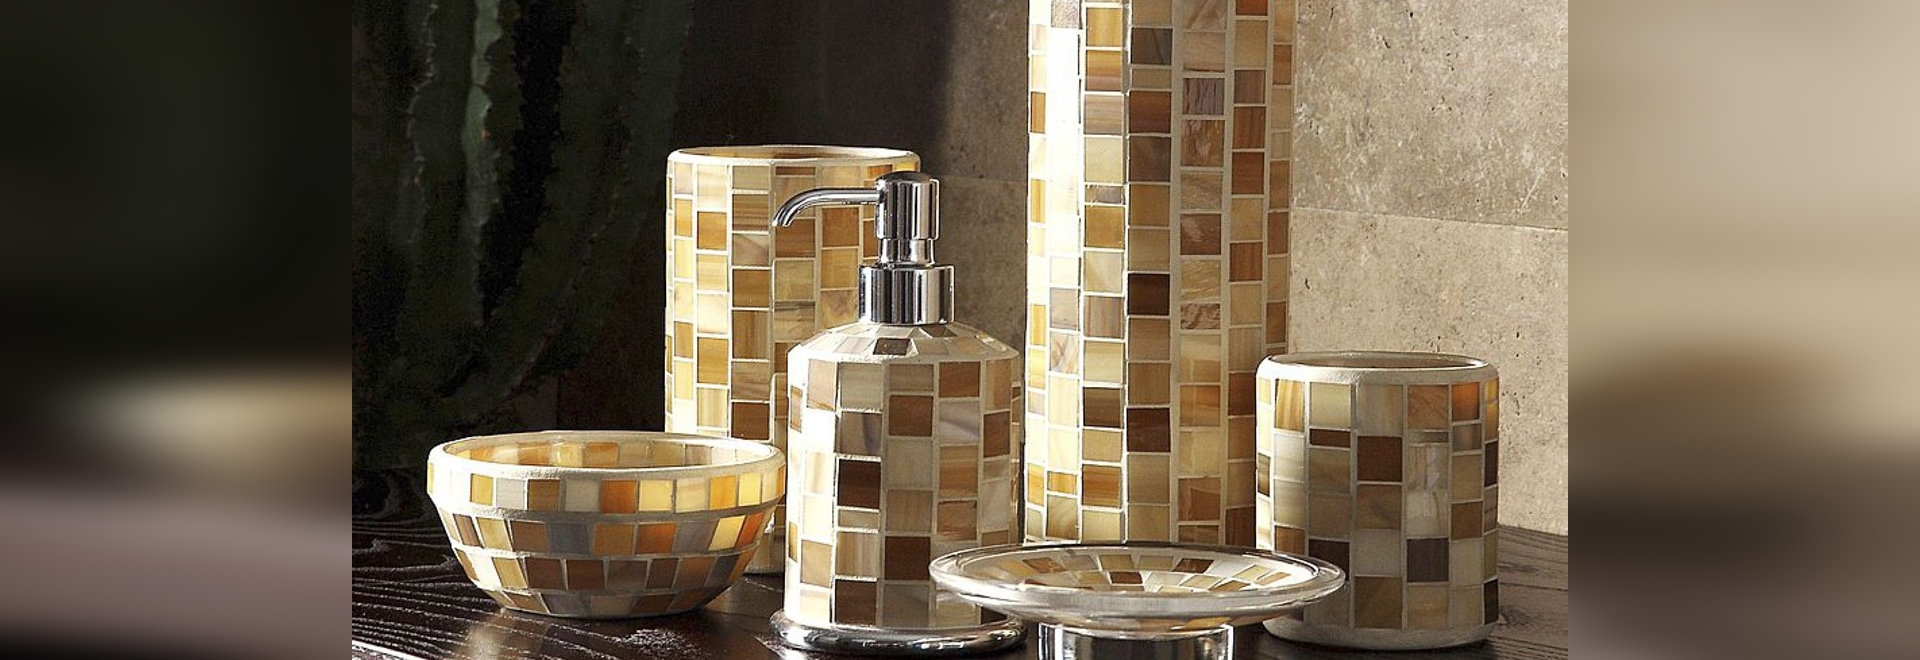 Boxart Accessori Bagno.Play With Colors Corinto Collection By Boxart Boxart